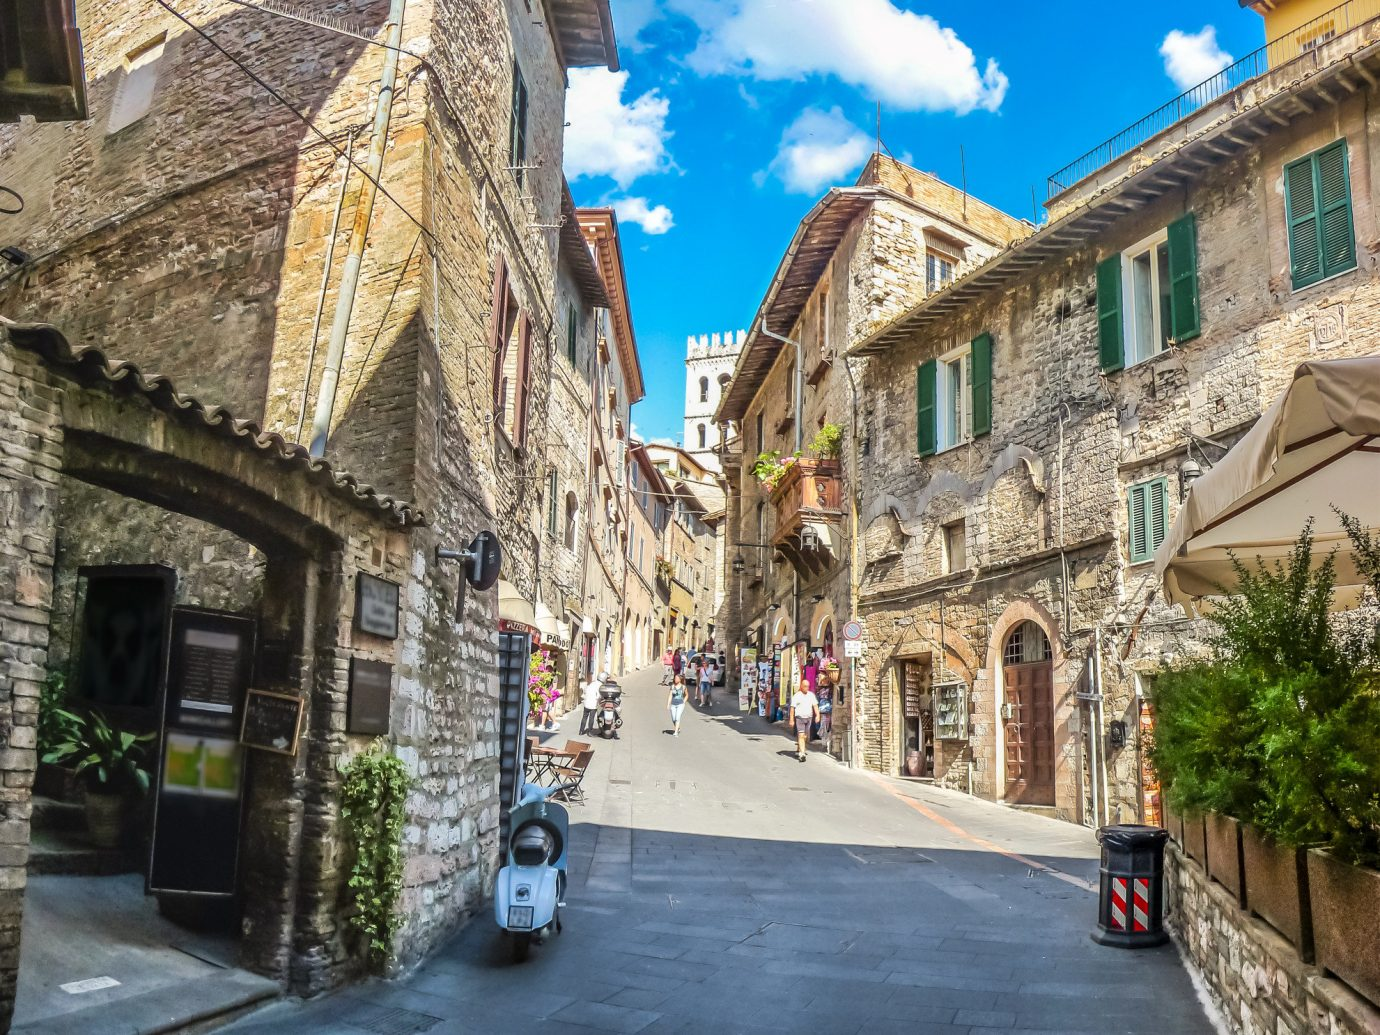 Trip Ideas building outdoor scene Town road way neighbourhood street City stone human settlement alley urban area Village tourism vacation residential area infrastructure old travel sidewalk older